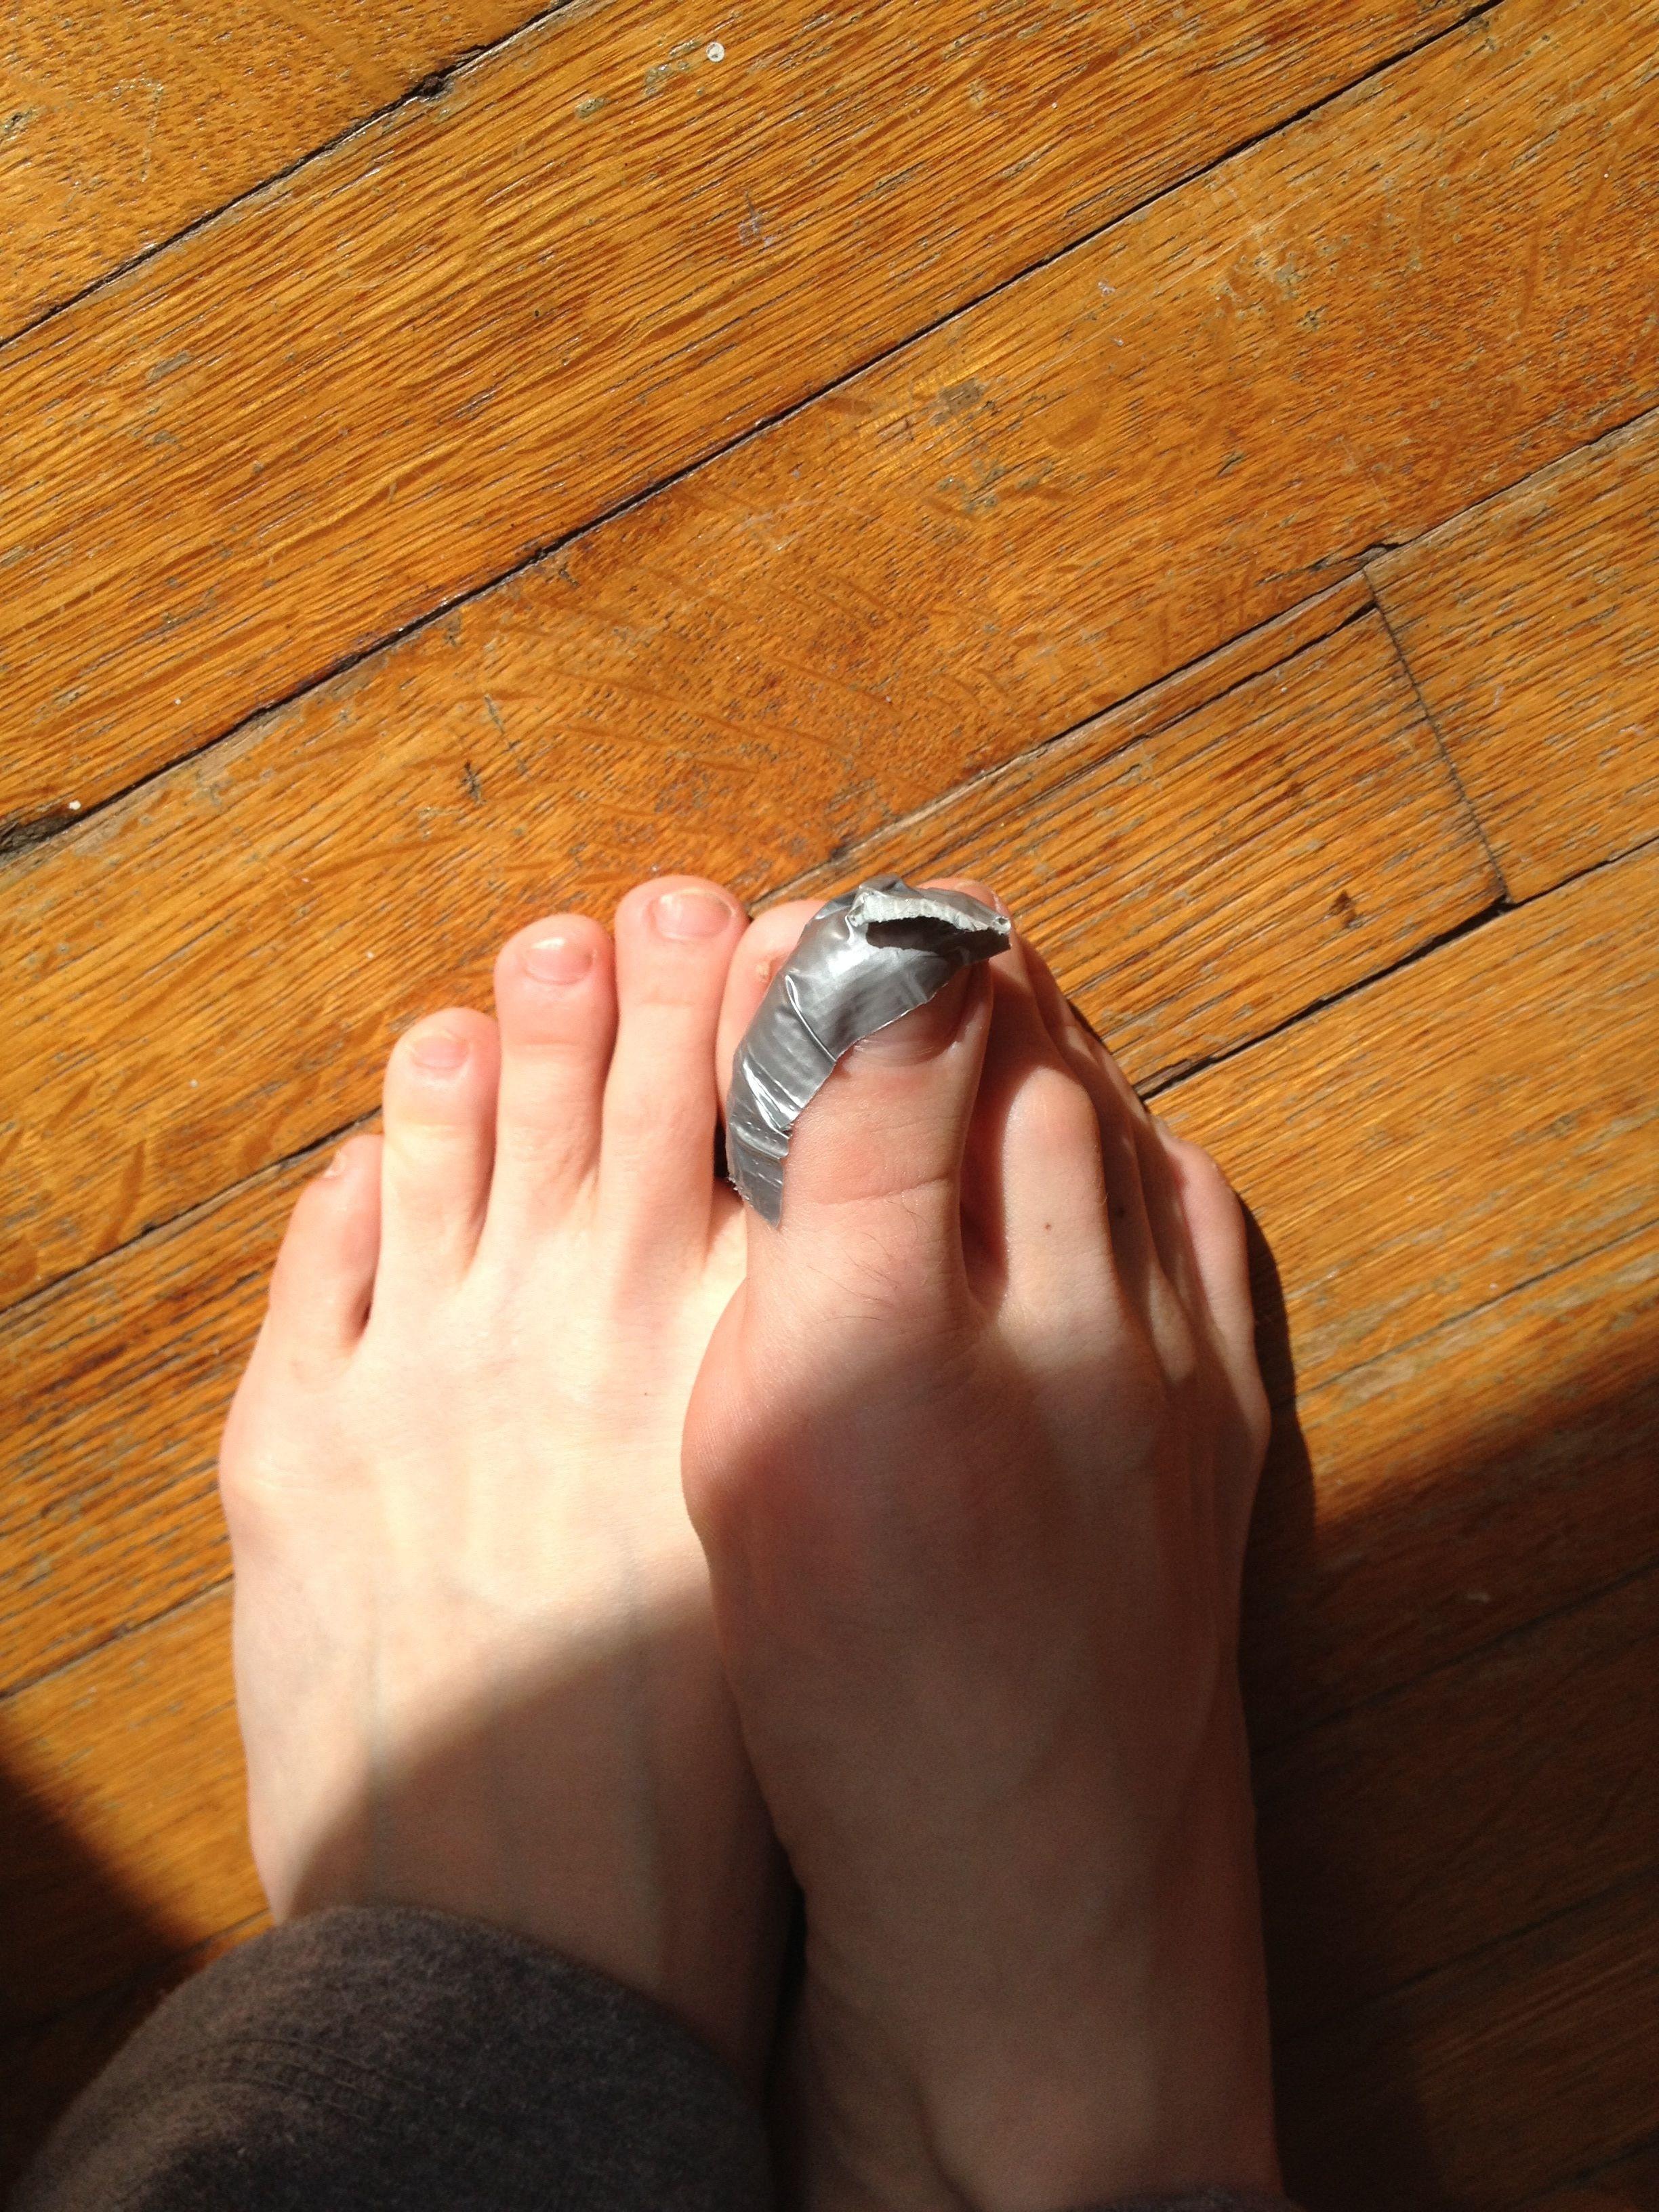 c3ac181aa10b540dceb2851d0ebc76e8 - How To Get Rid Of Plantar Warts Duct Tape